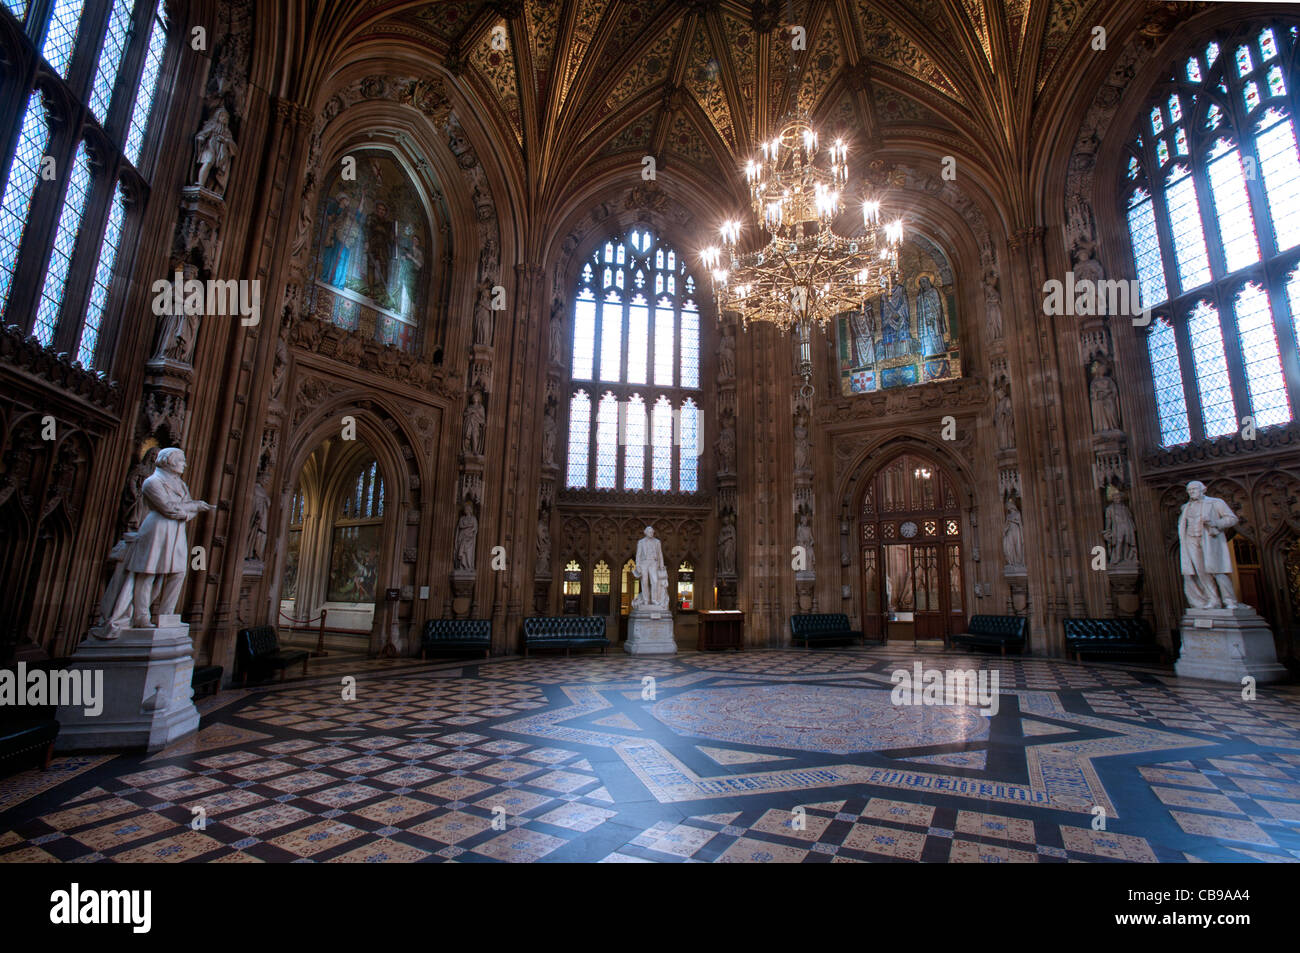 House of Lords & House of Commons Lobby, The Parliament, London, UK